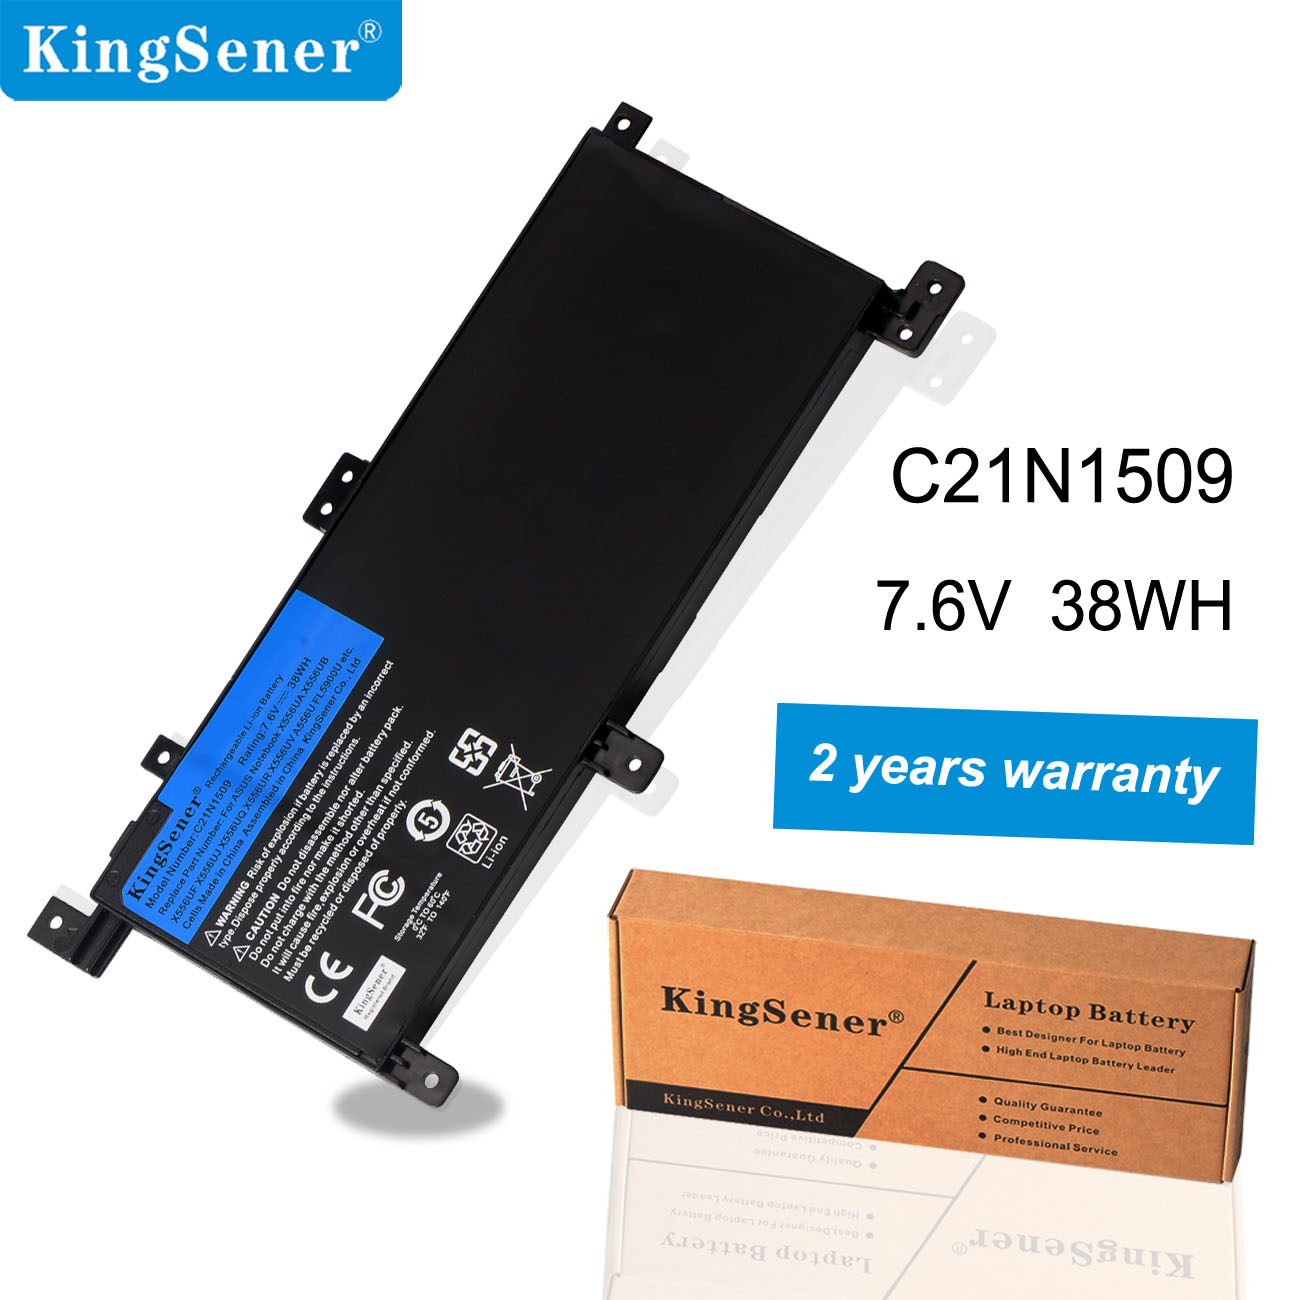 KingSener New C21N1509 Laptop battery for <font><b>ASUS</b></font> Notebook <font><b>X556UA</b></font> X556UB X556UF X556UJ X556UQ X556UR X556UV A556U FL5900U image